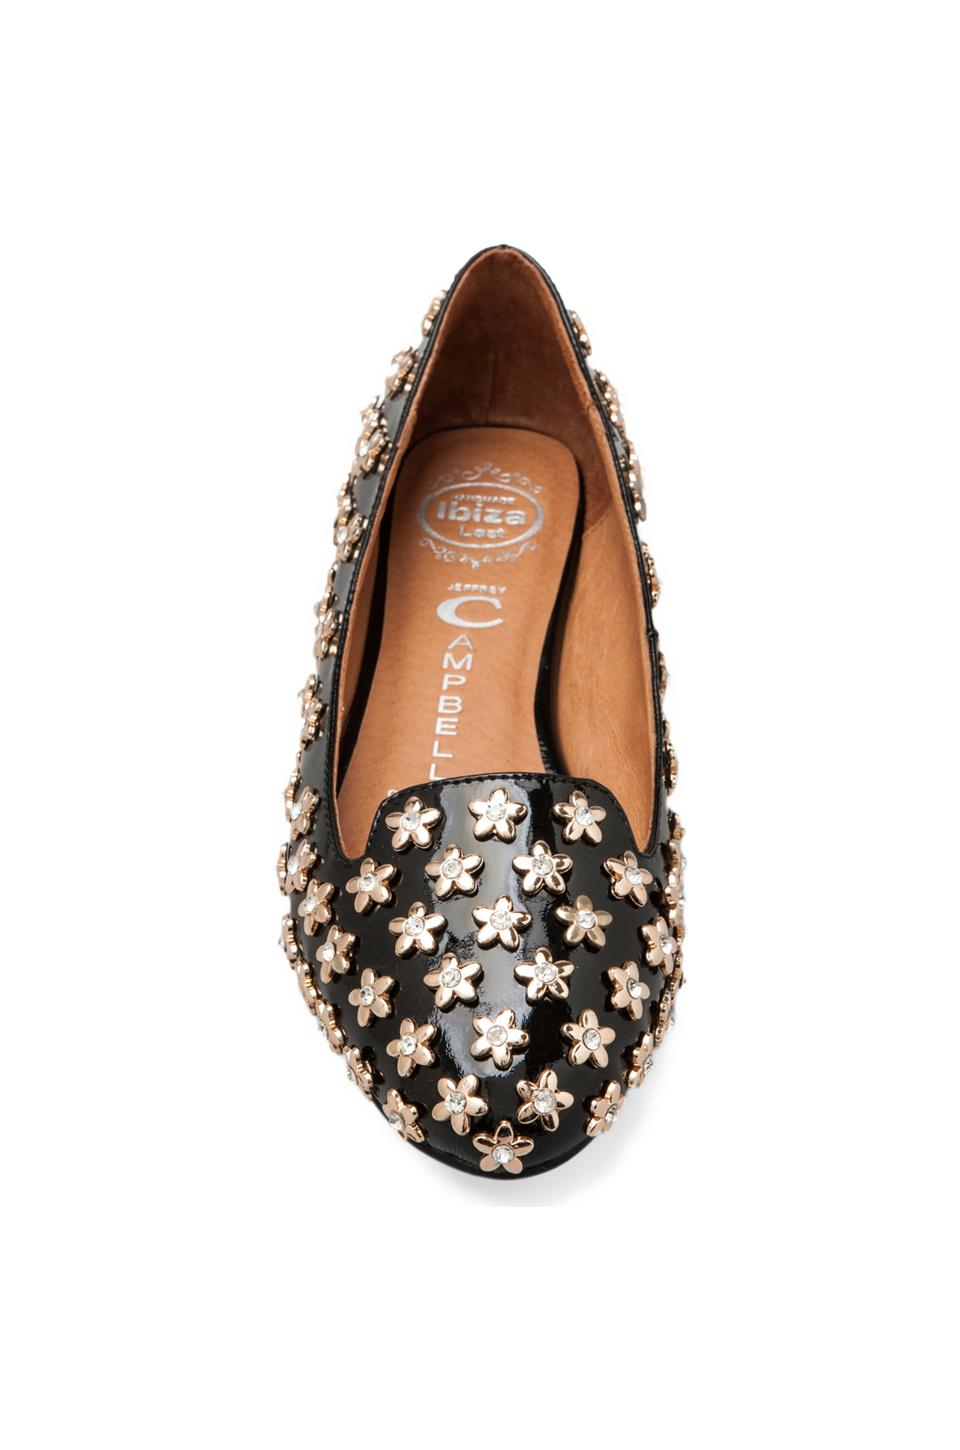 Jeffrey Campbell Martini-Flower in Black Patent Gold